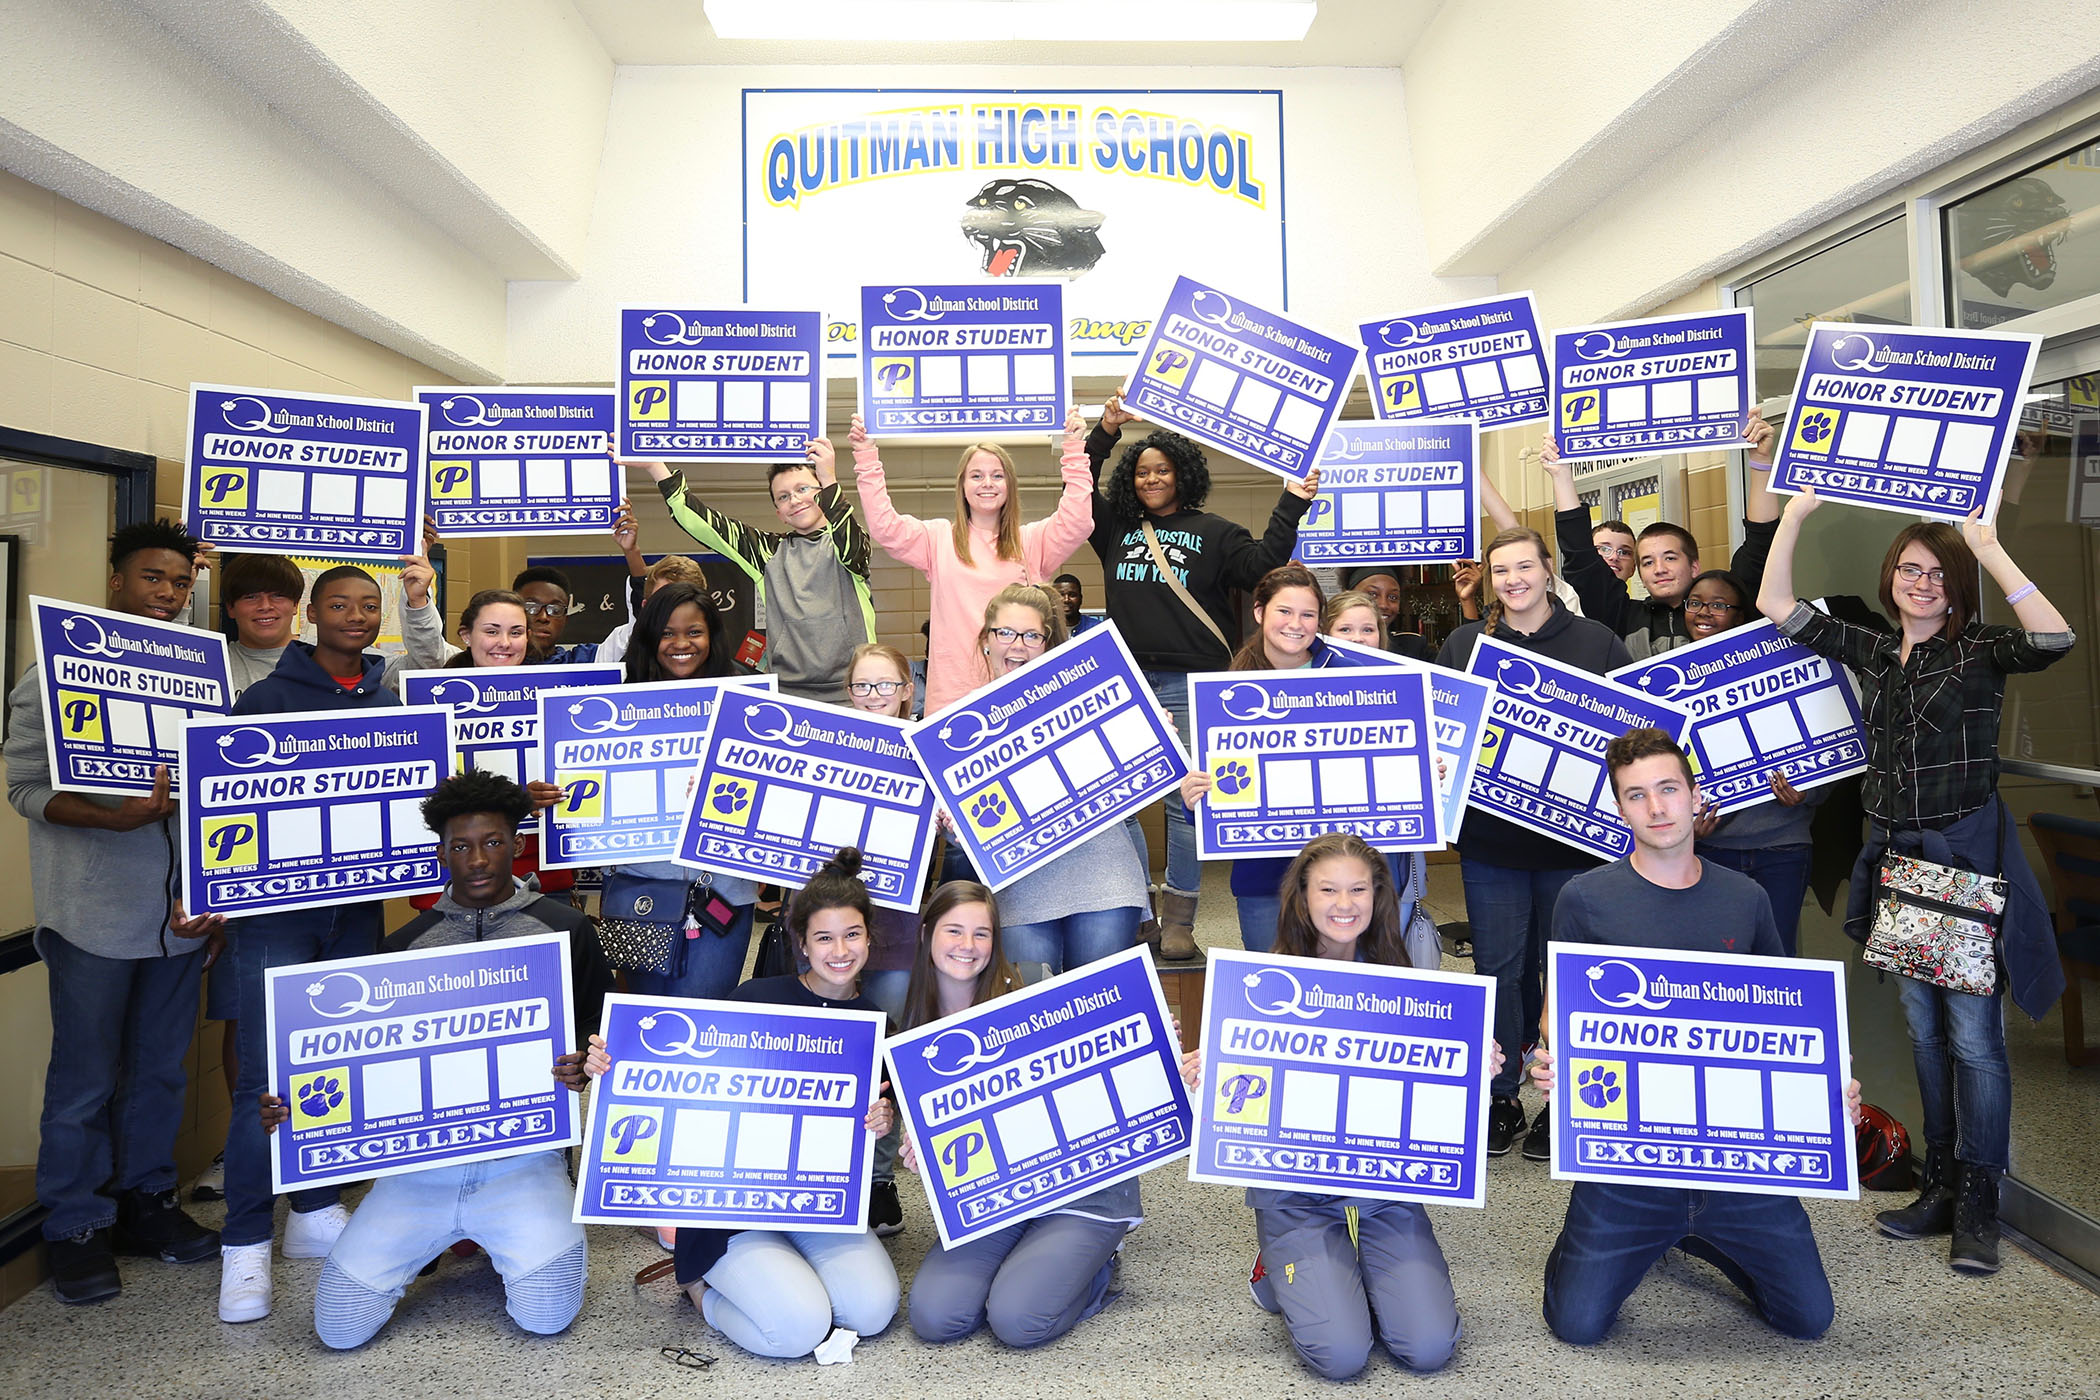 QHS sophomores stand with their honors yard signs.